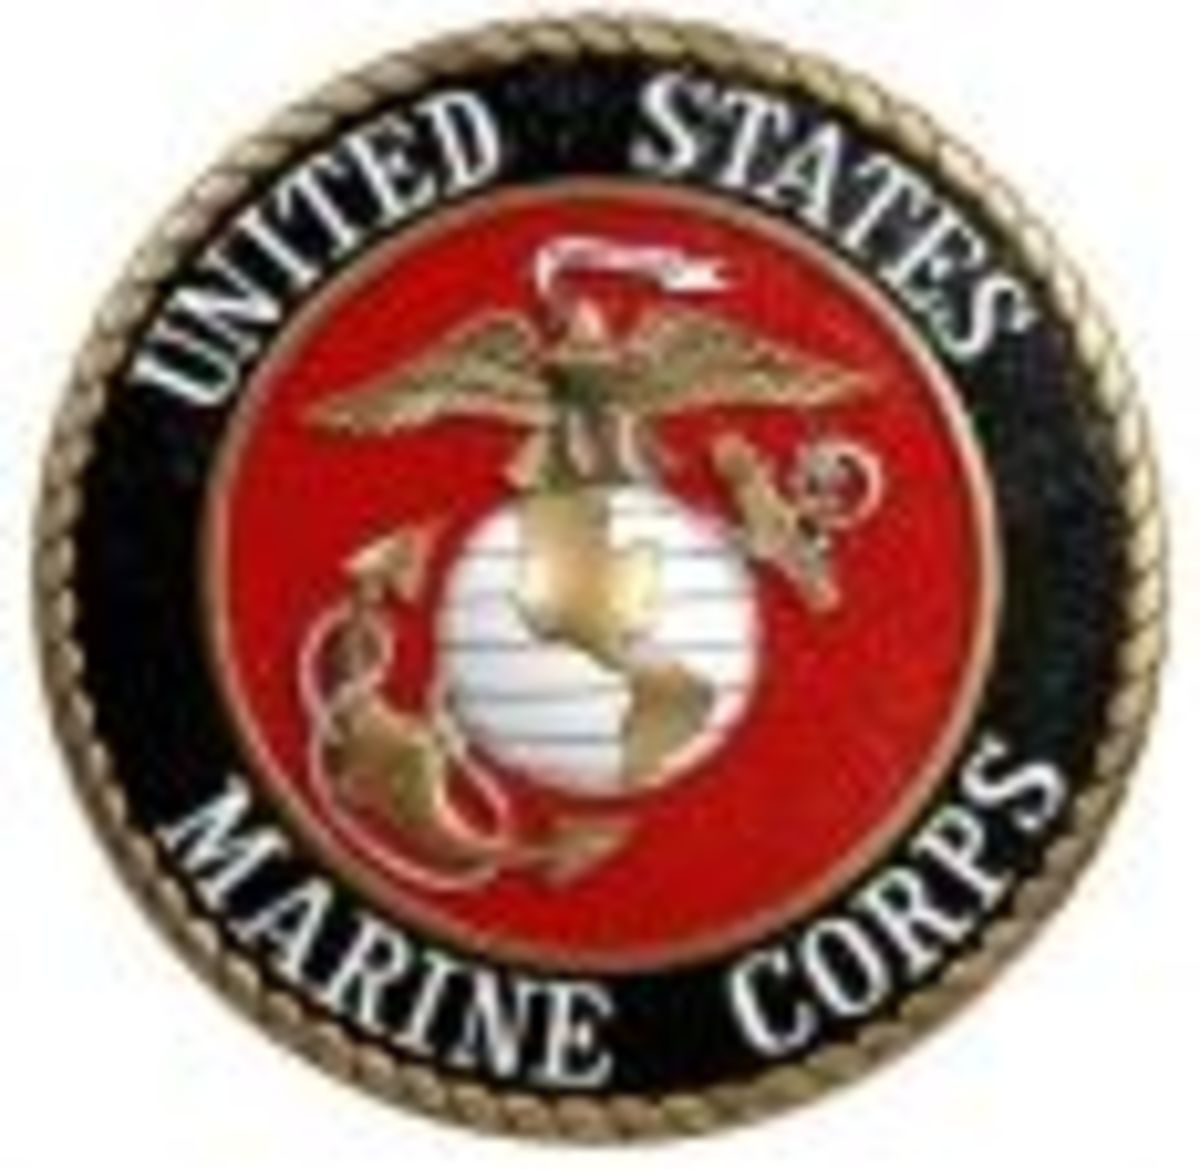 Marine Bootcamp: The Real Deal